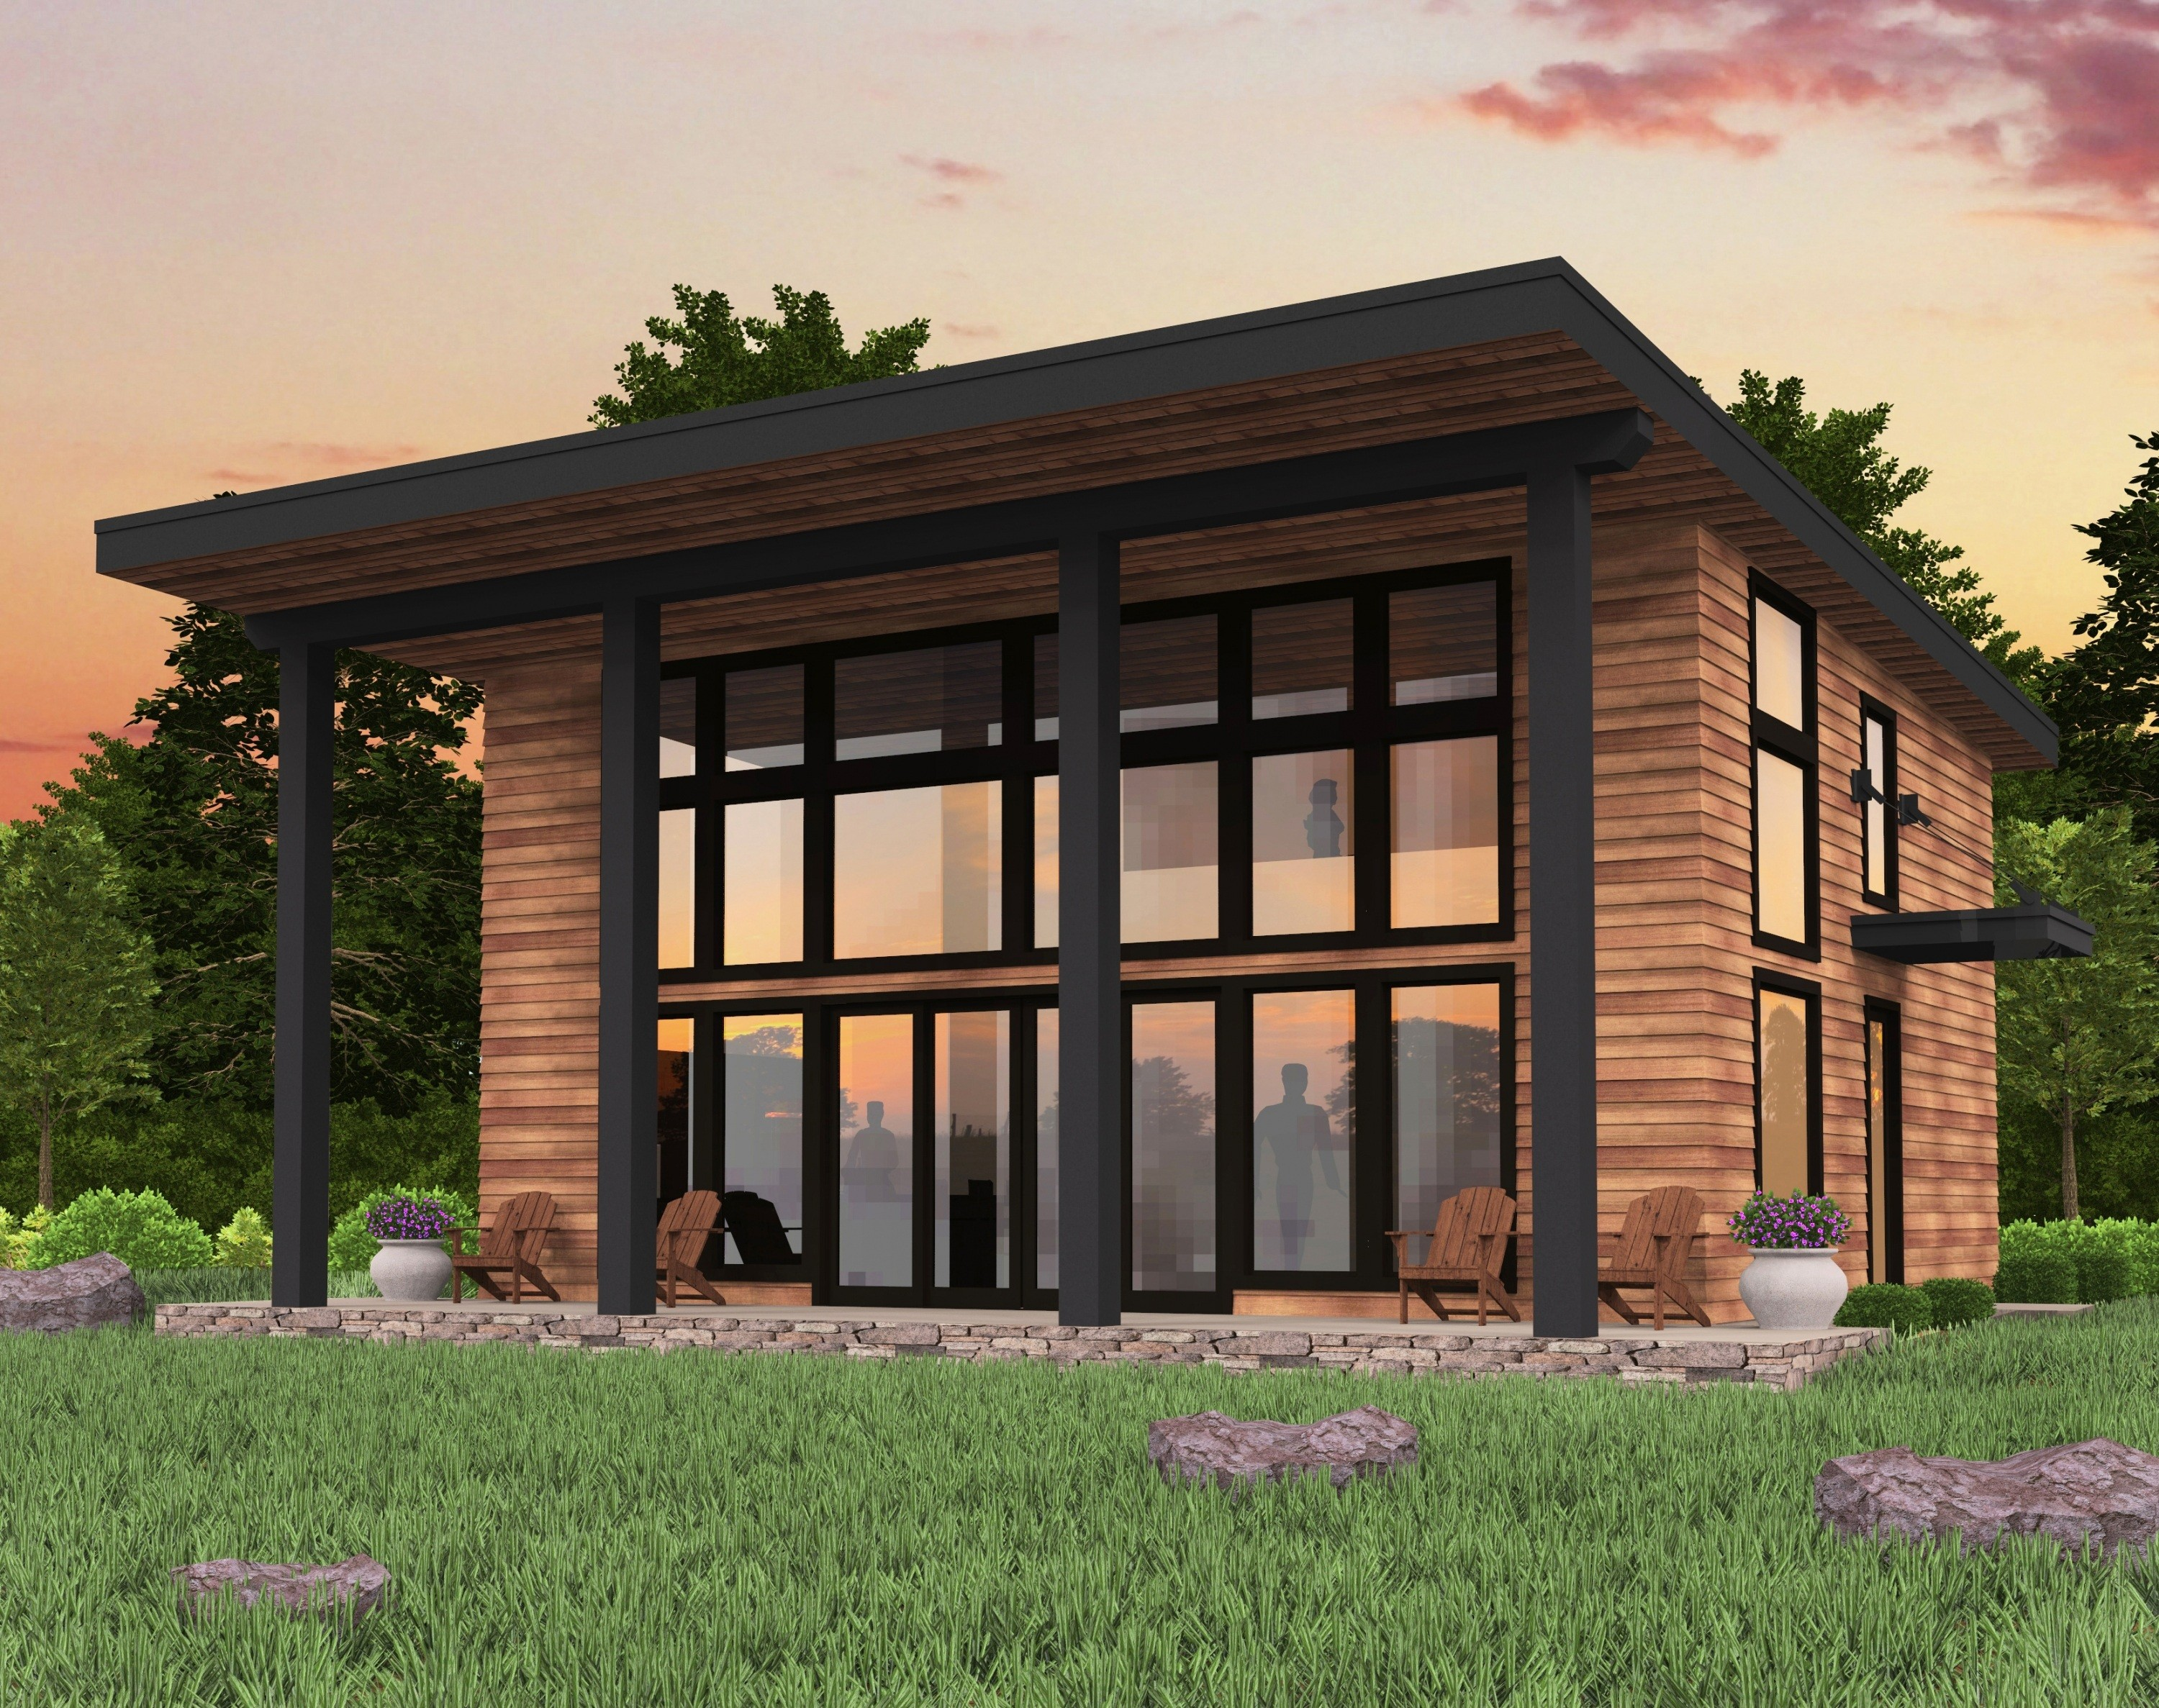 Bamboo mark stewart home design for Small house plans for sloped lots